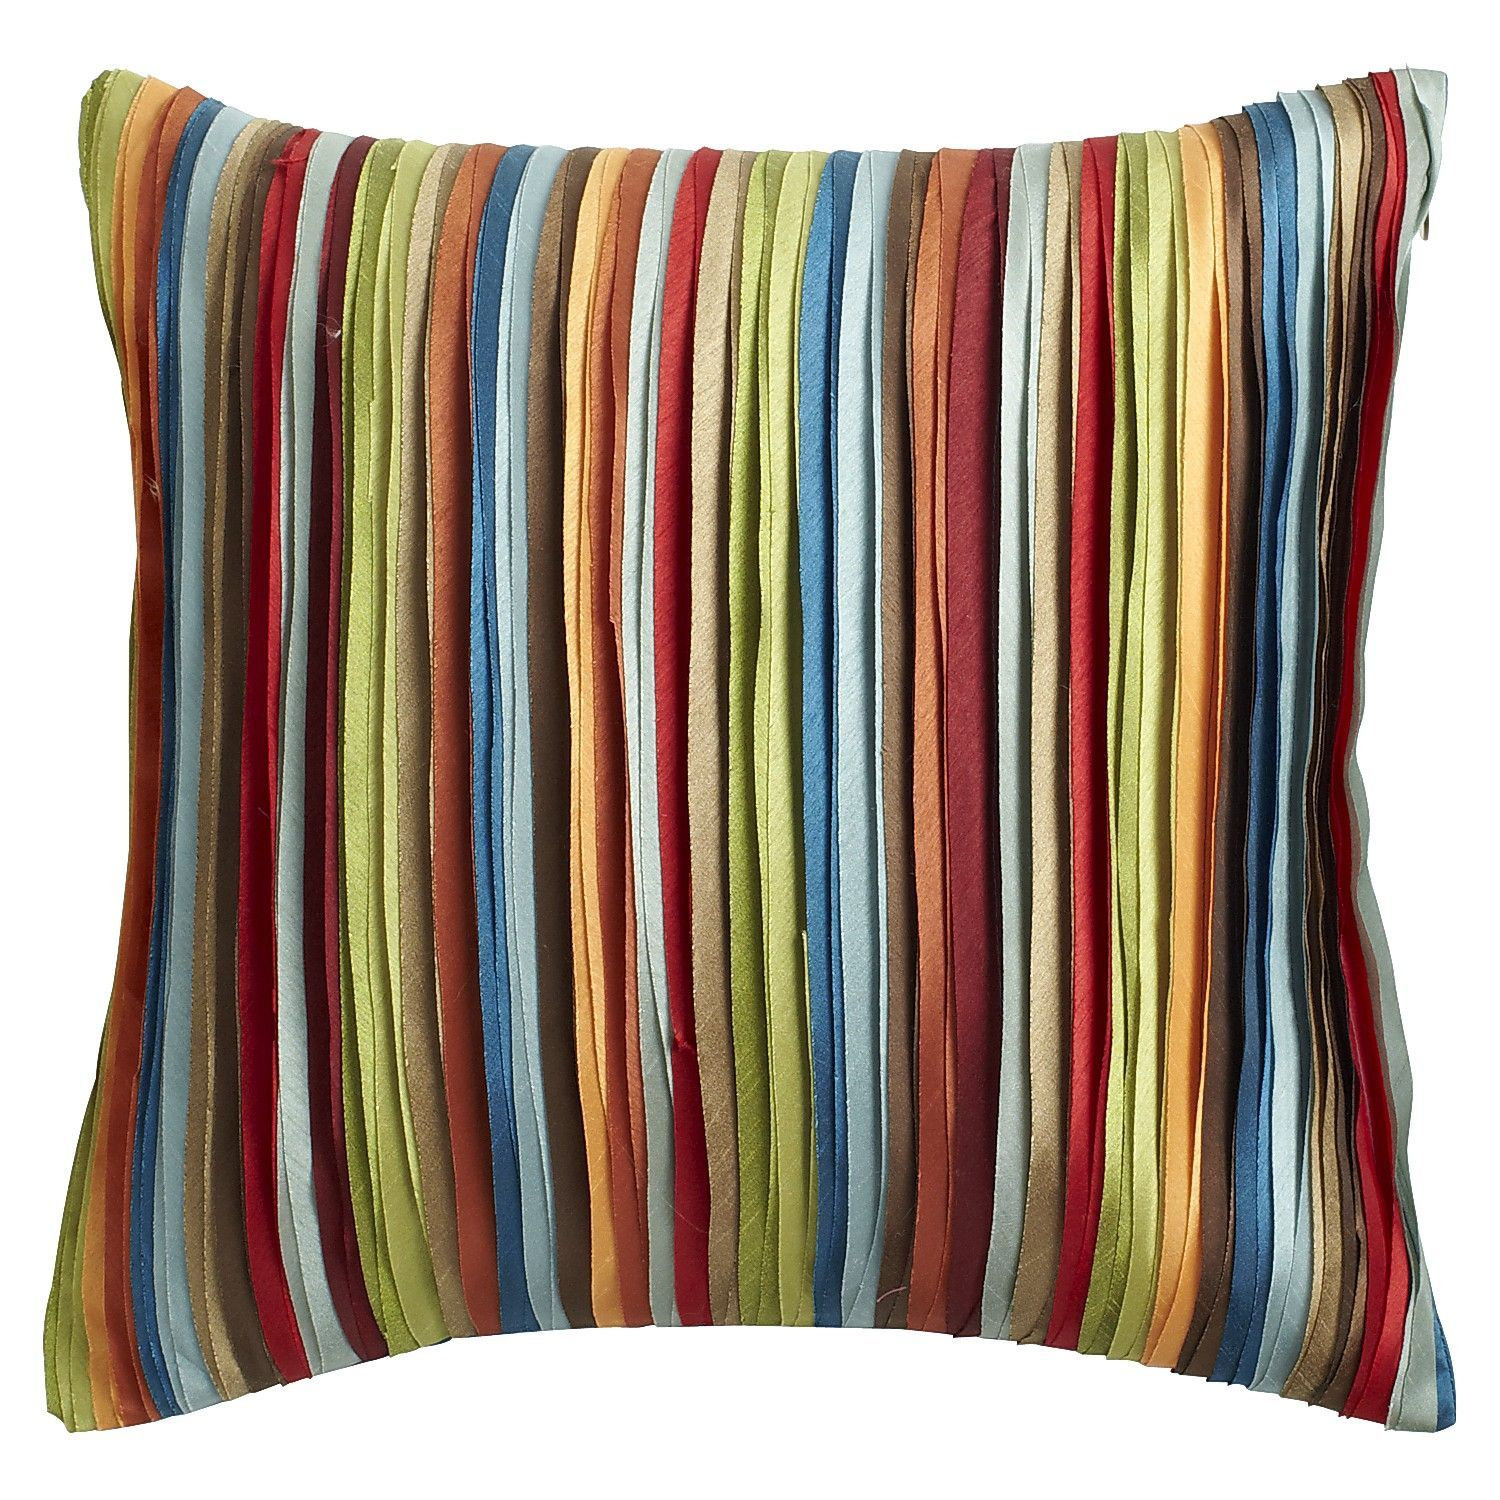 Marvelous Multi Ribbon Pillow Pier 1 Imports Home Decor Pillows Onthecornerstone Fun Painted Chair Ideas Images Onthecornerstoneorg